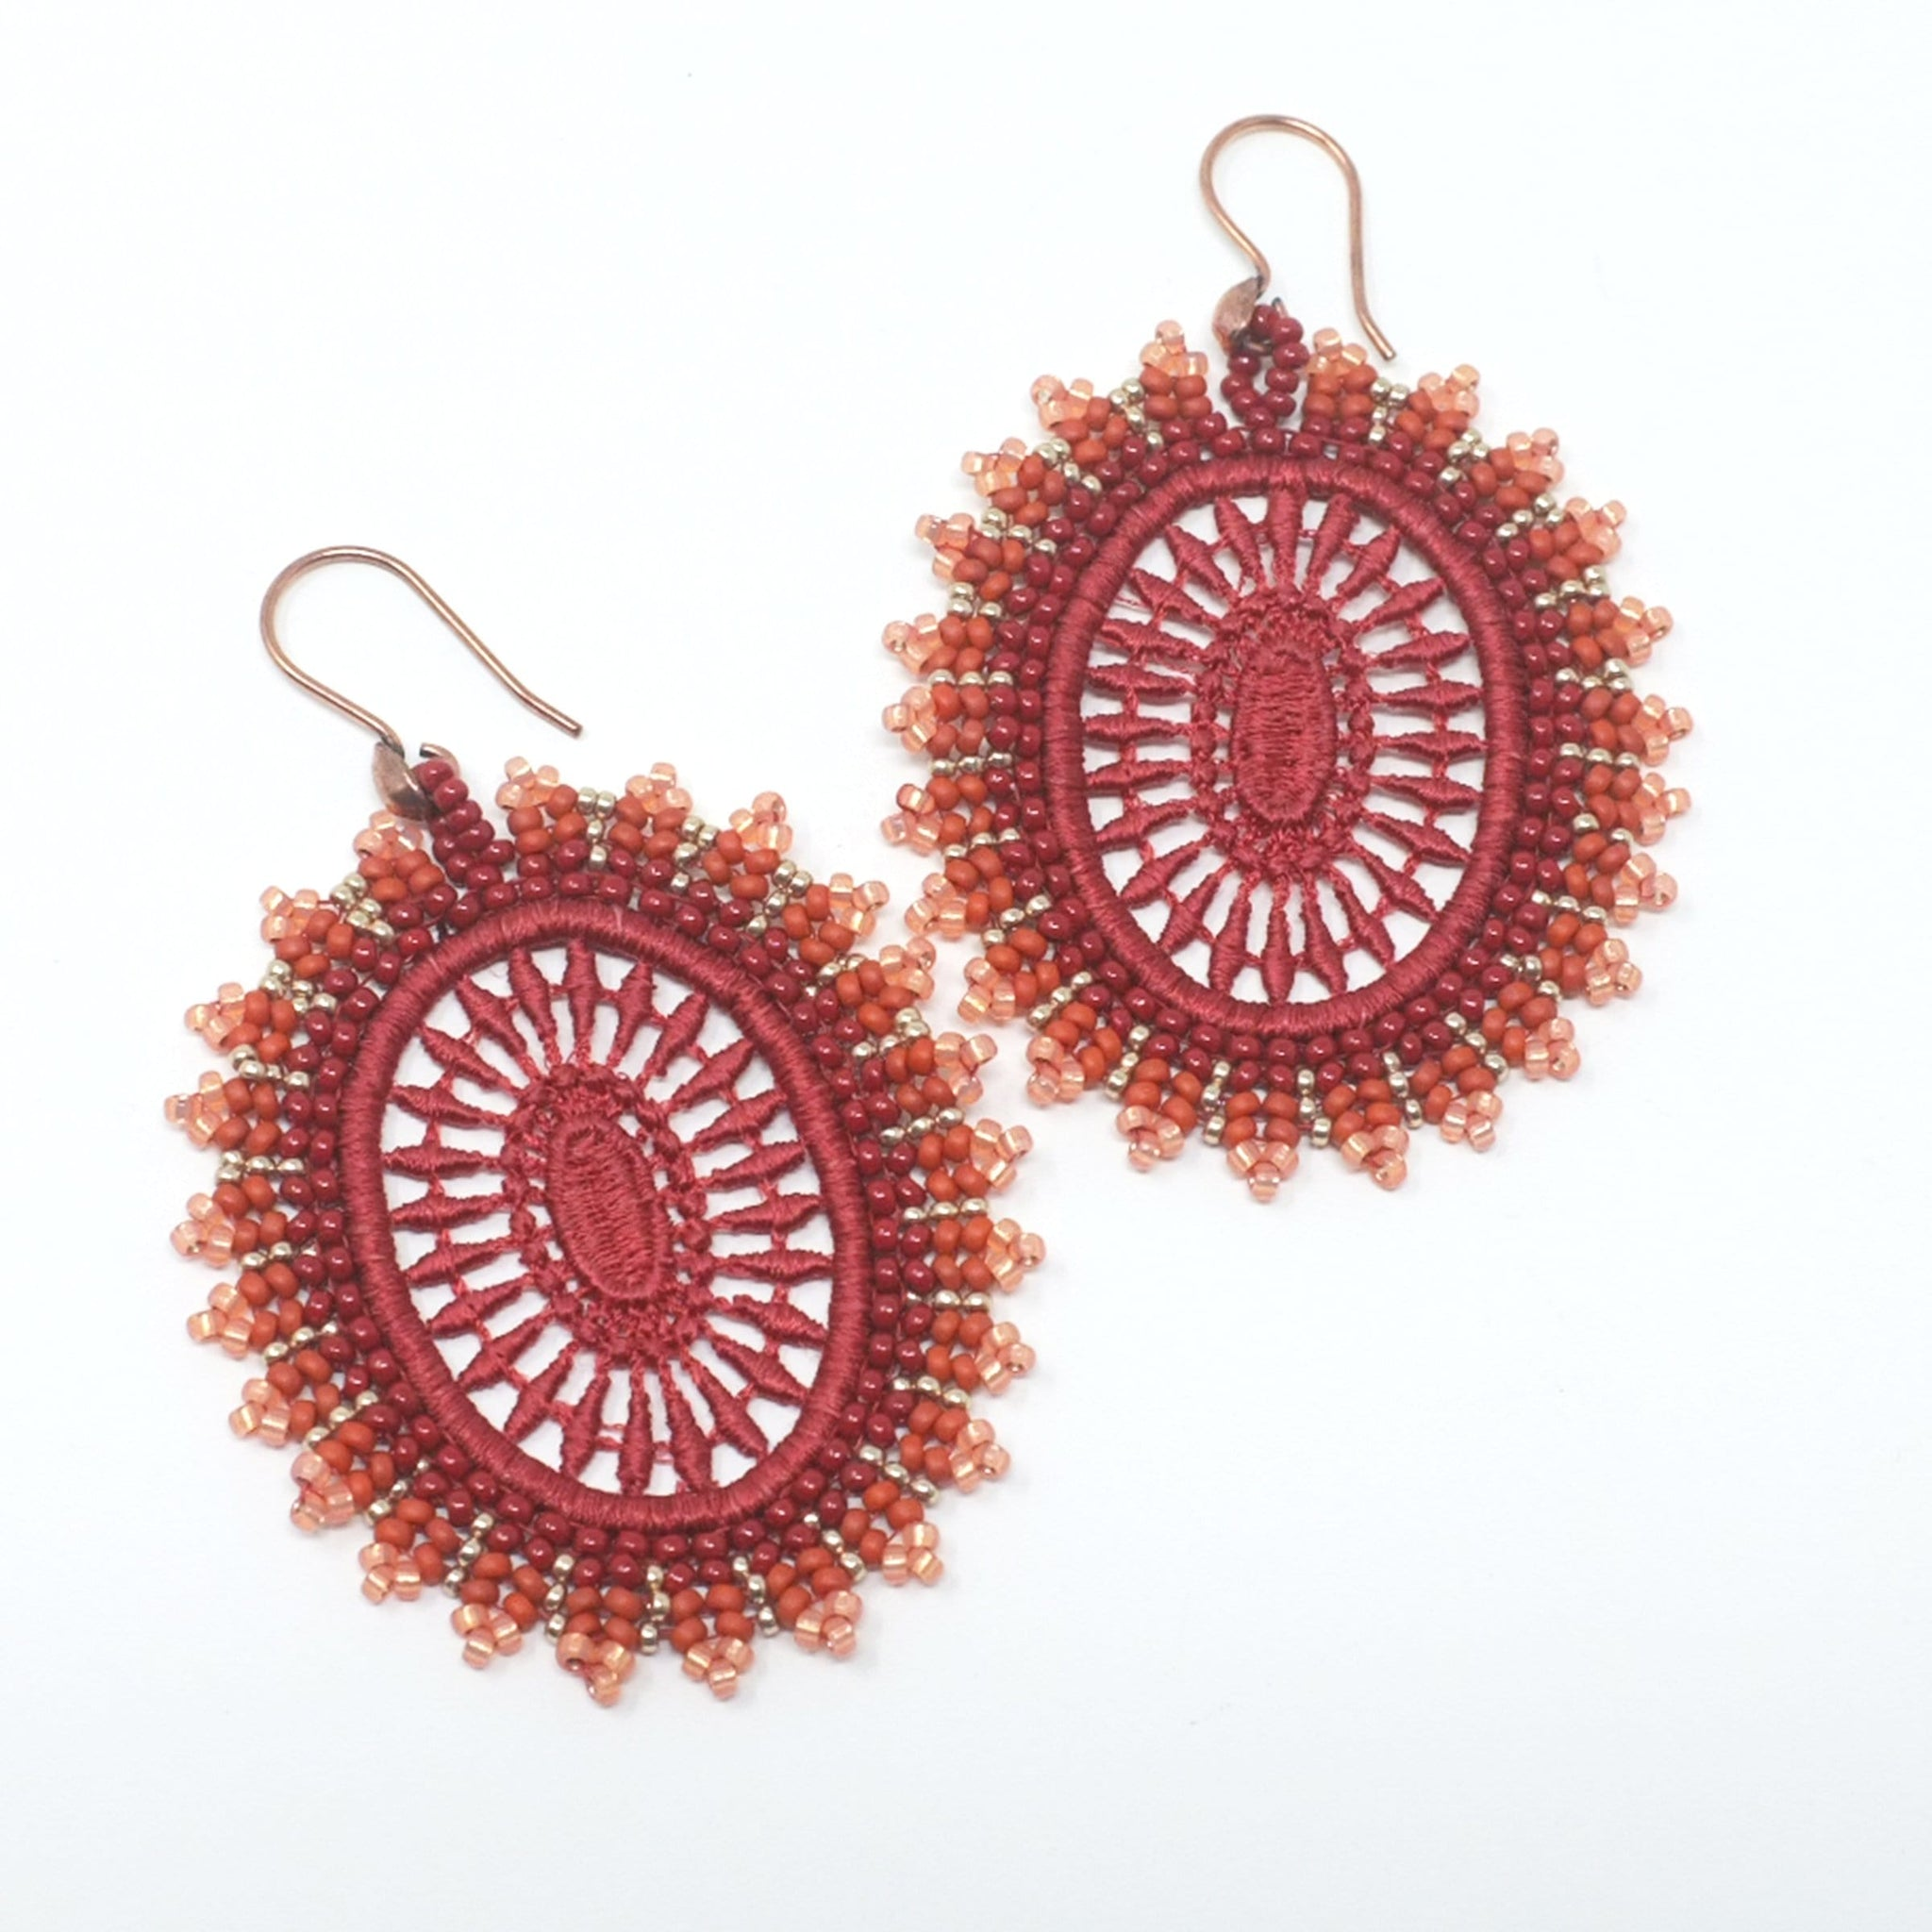 Sunset Bead Embroidered Lace Earrings